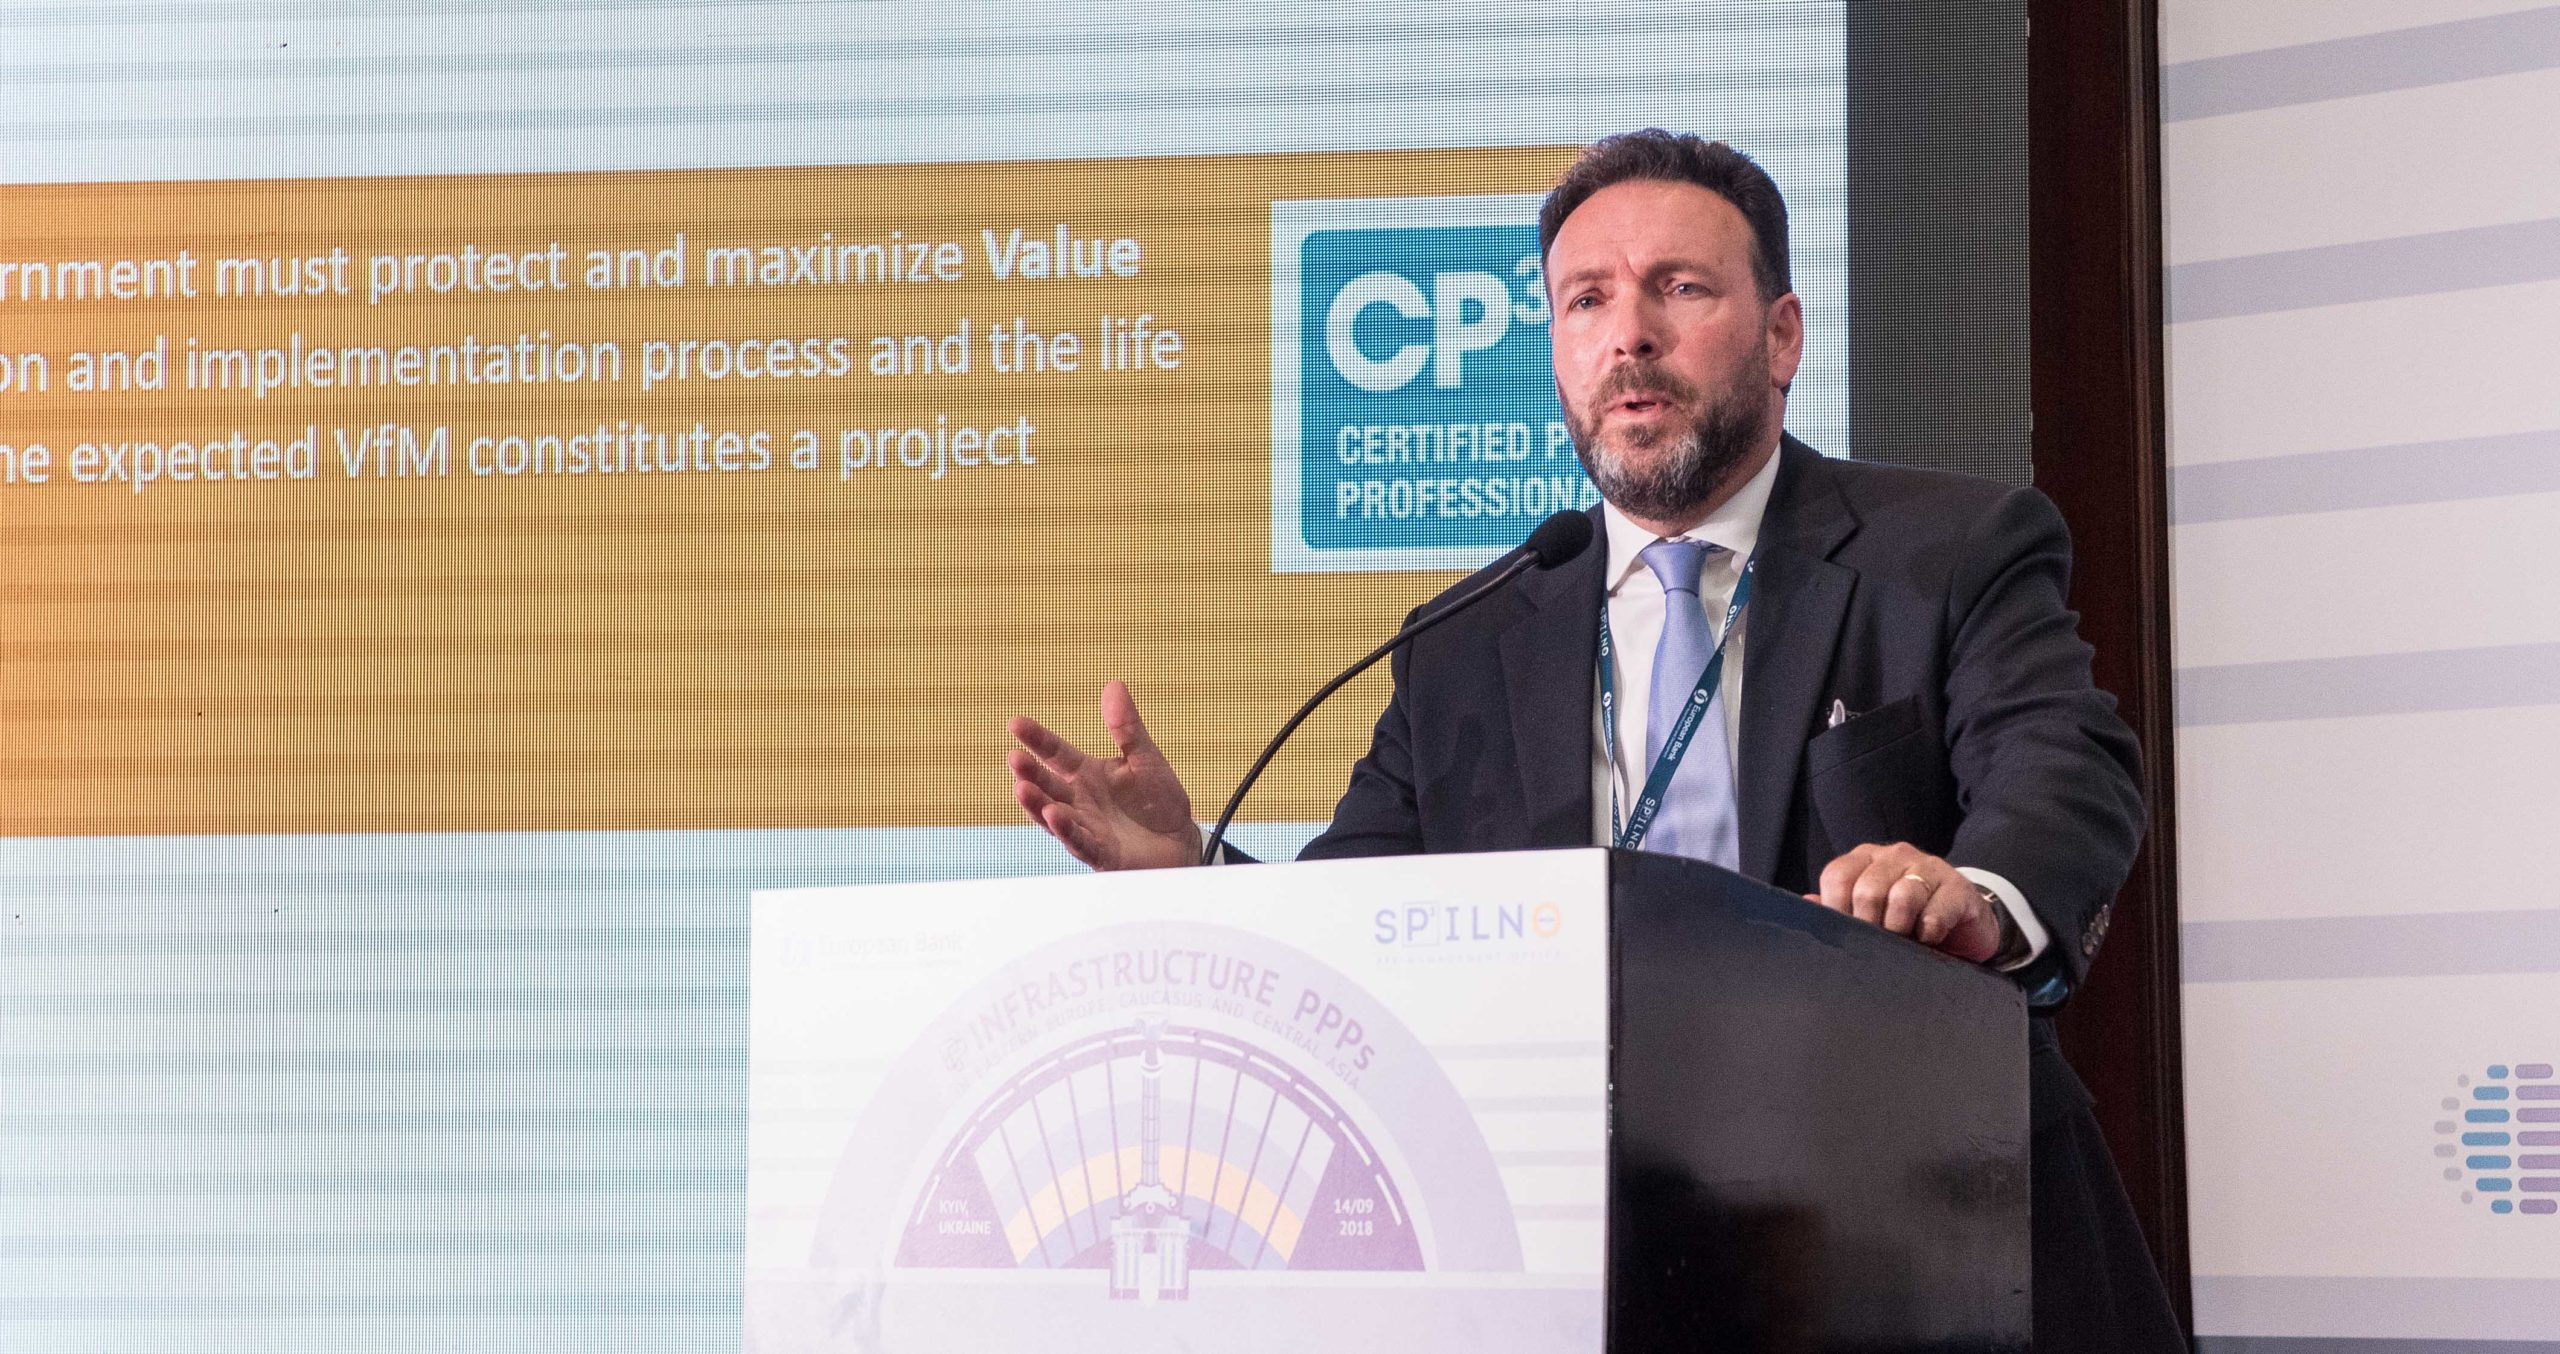 Global PPP Conference